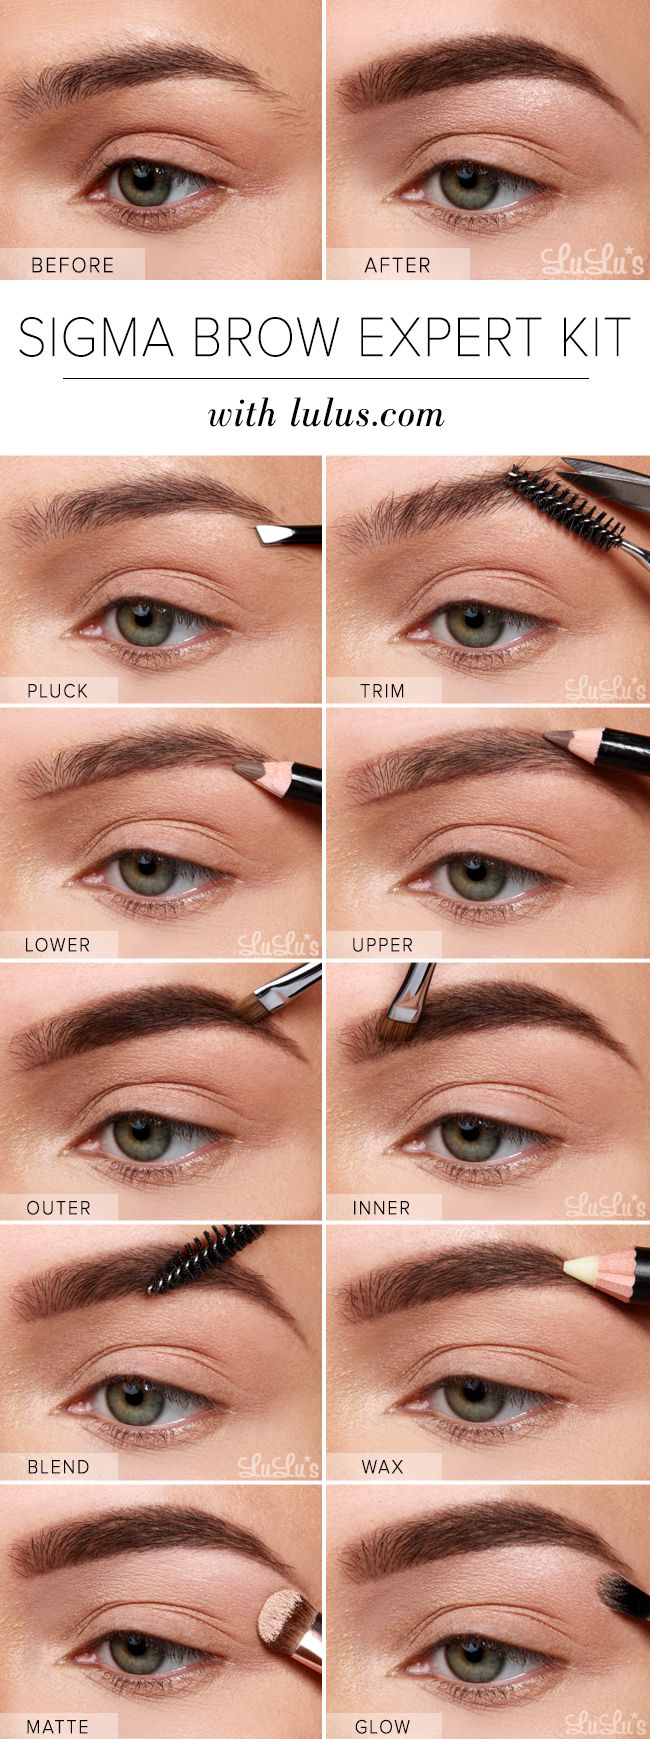 Photo of Lulus How-To: Sigma Brow Expert Kit Eyebrow Tutorial – Lulus.com Fashion Blog